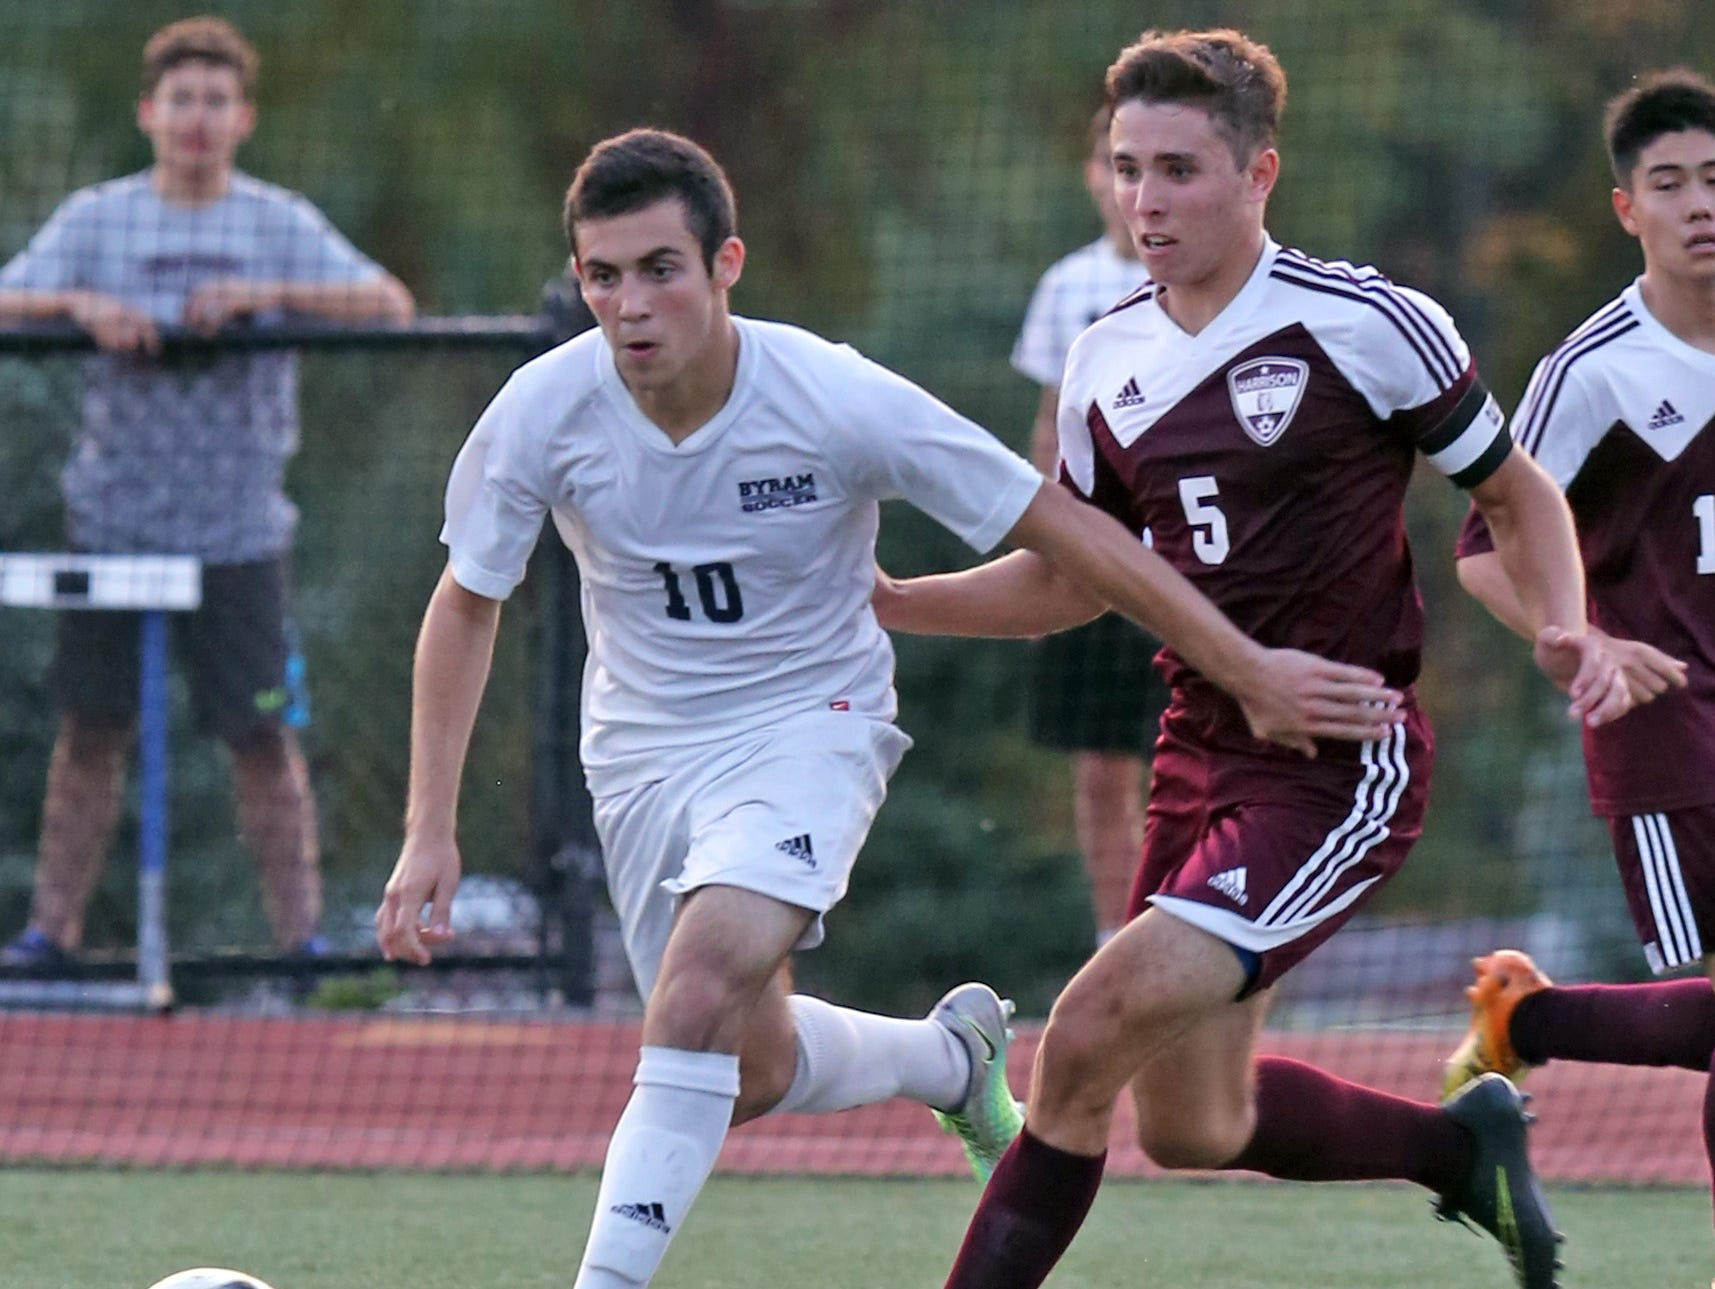 Jack Beer of Byram Hills keeps the ball away from Harrison's Ryan Homem during their game on Monday. Boys soccer beat writer Vin Mercogliano has Beer and the Bobcats winning a section title in Class A.